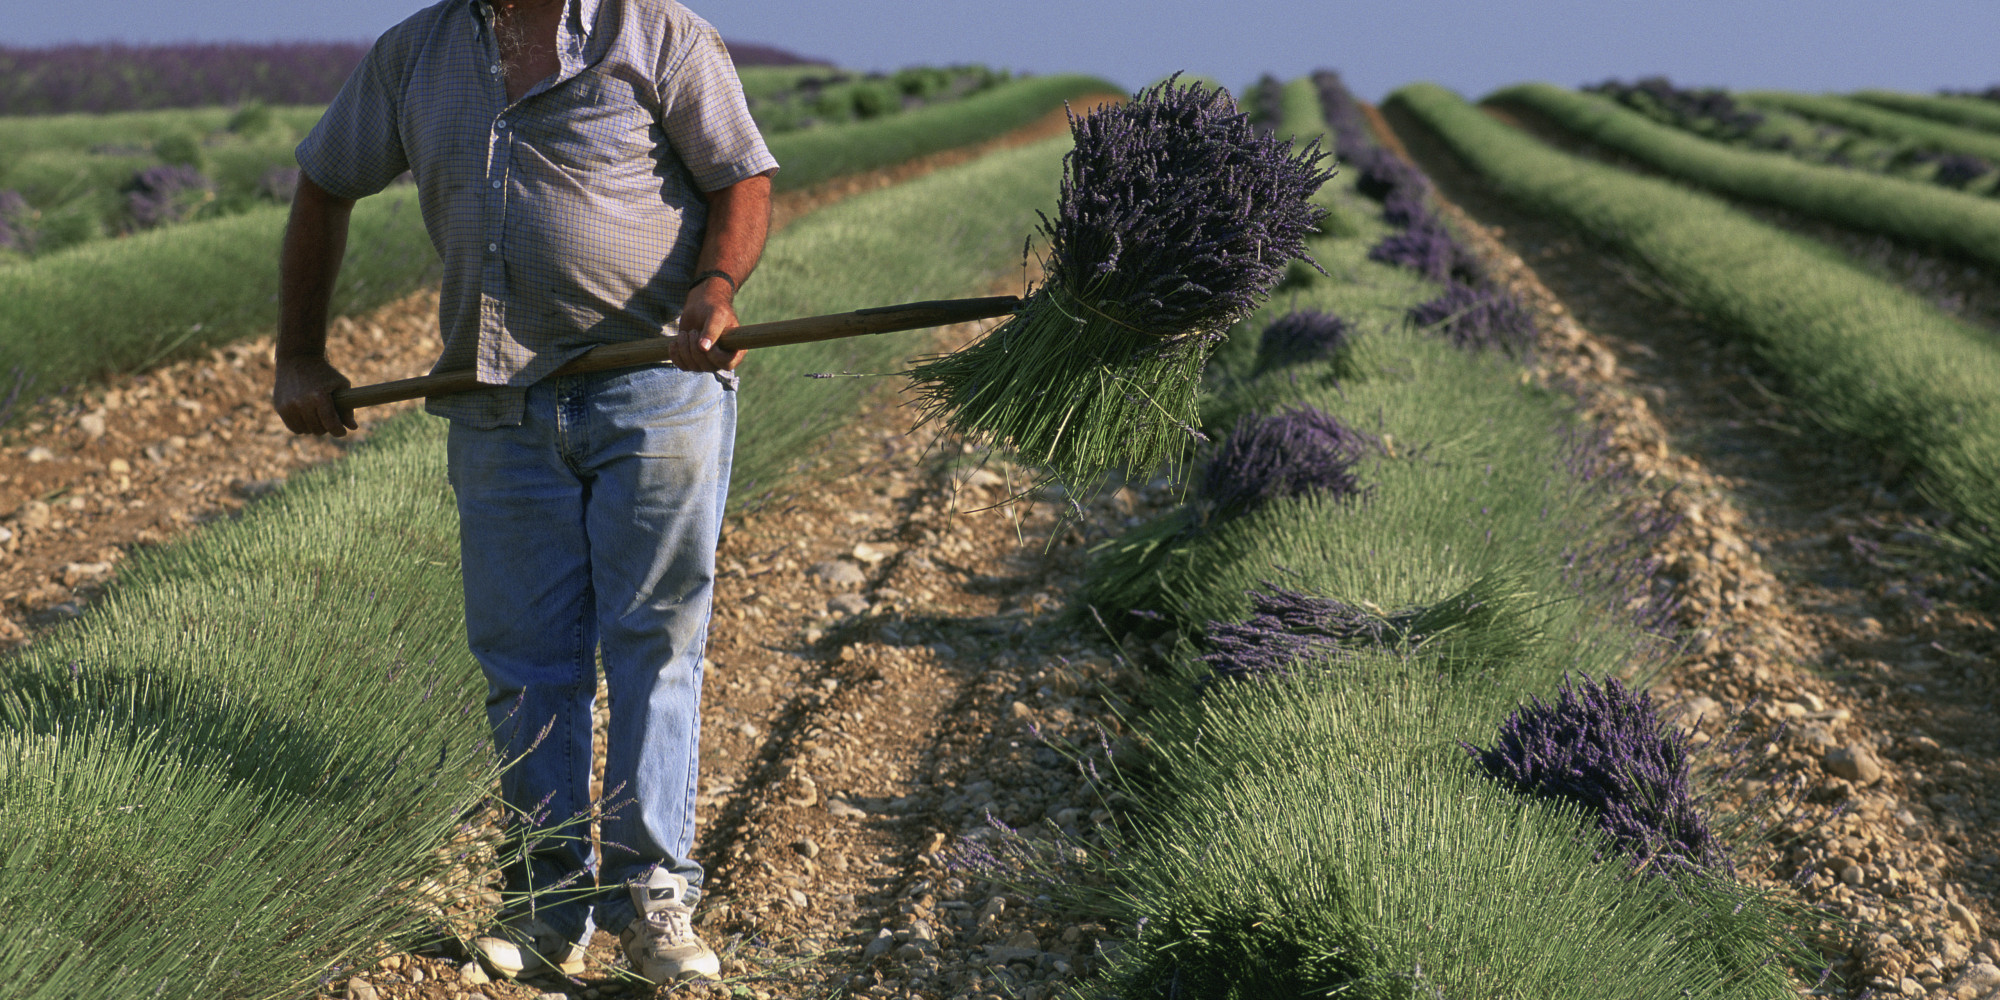 A French Farmer Commits Suicide Every 2 Days Study Says